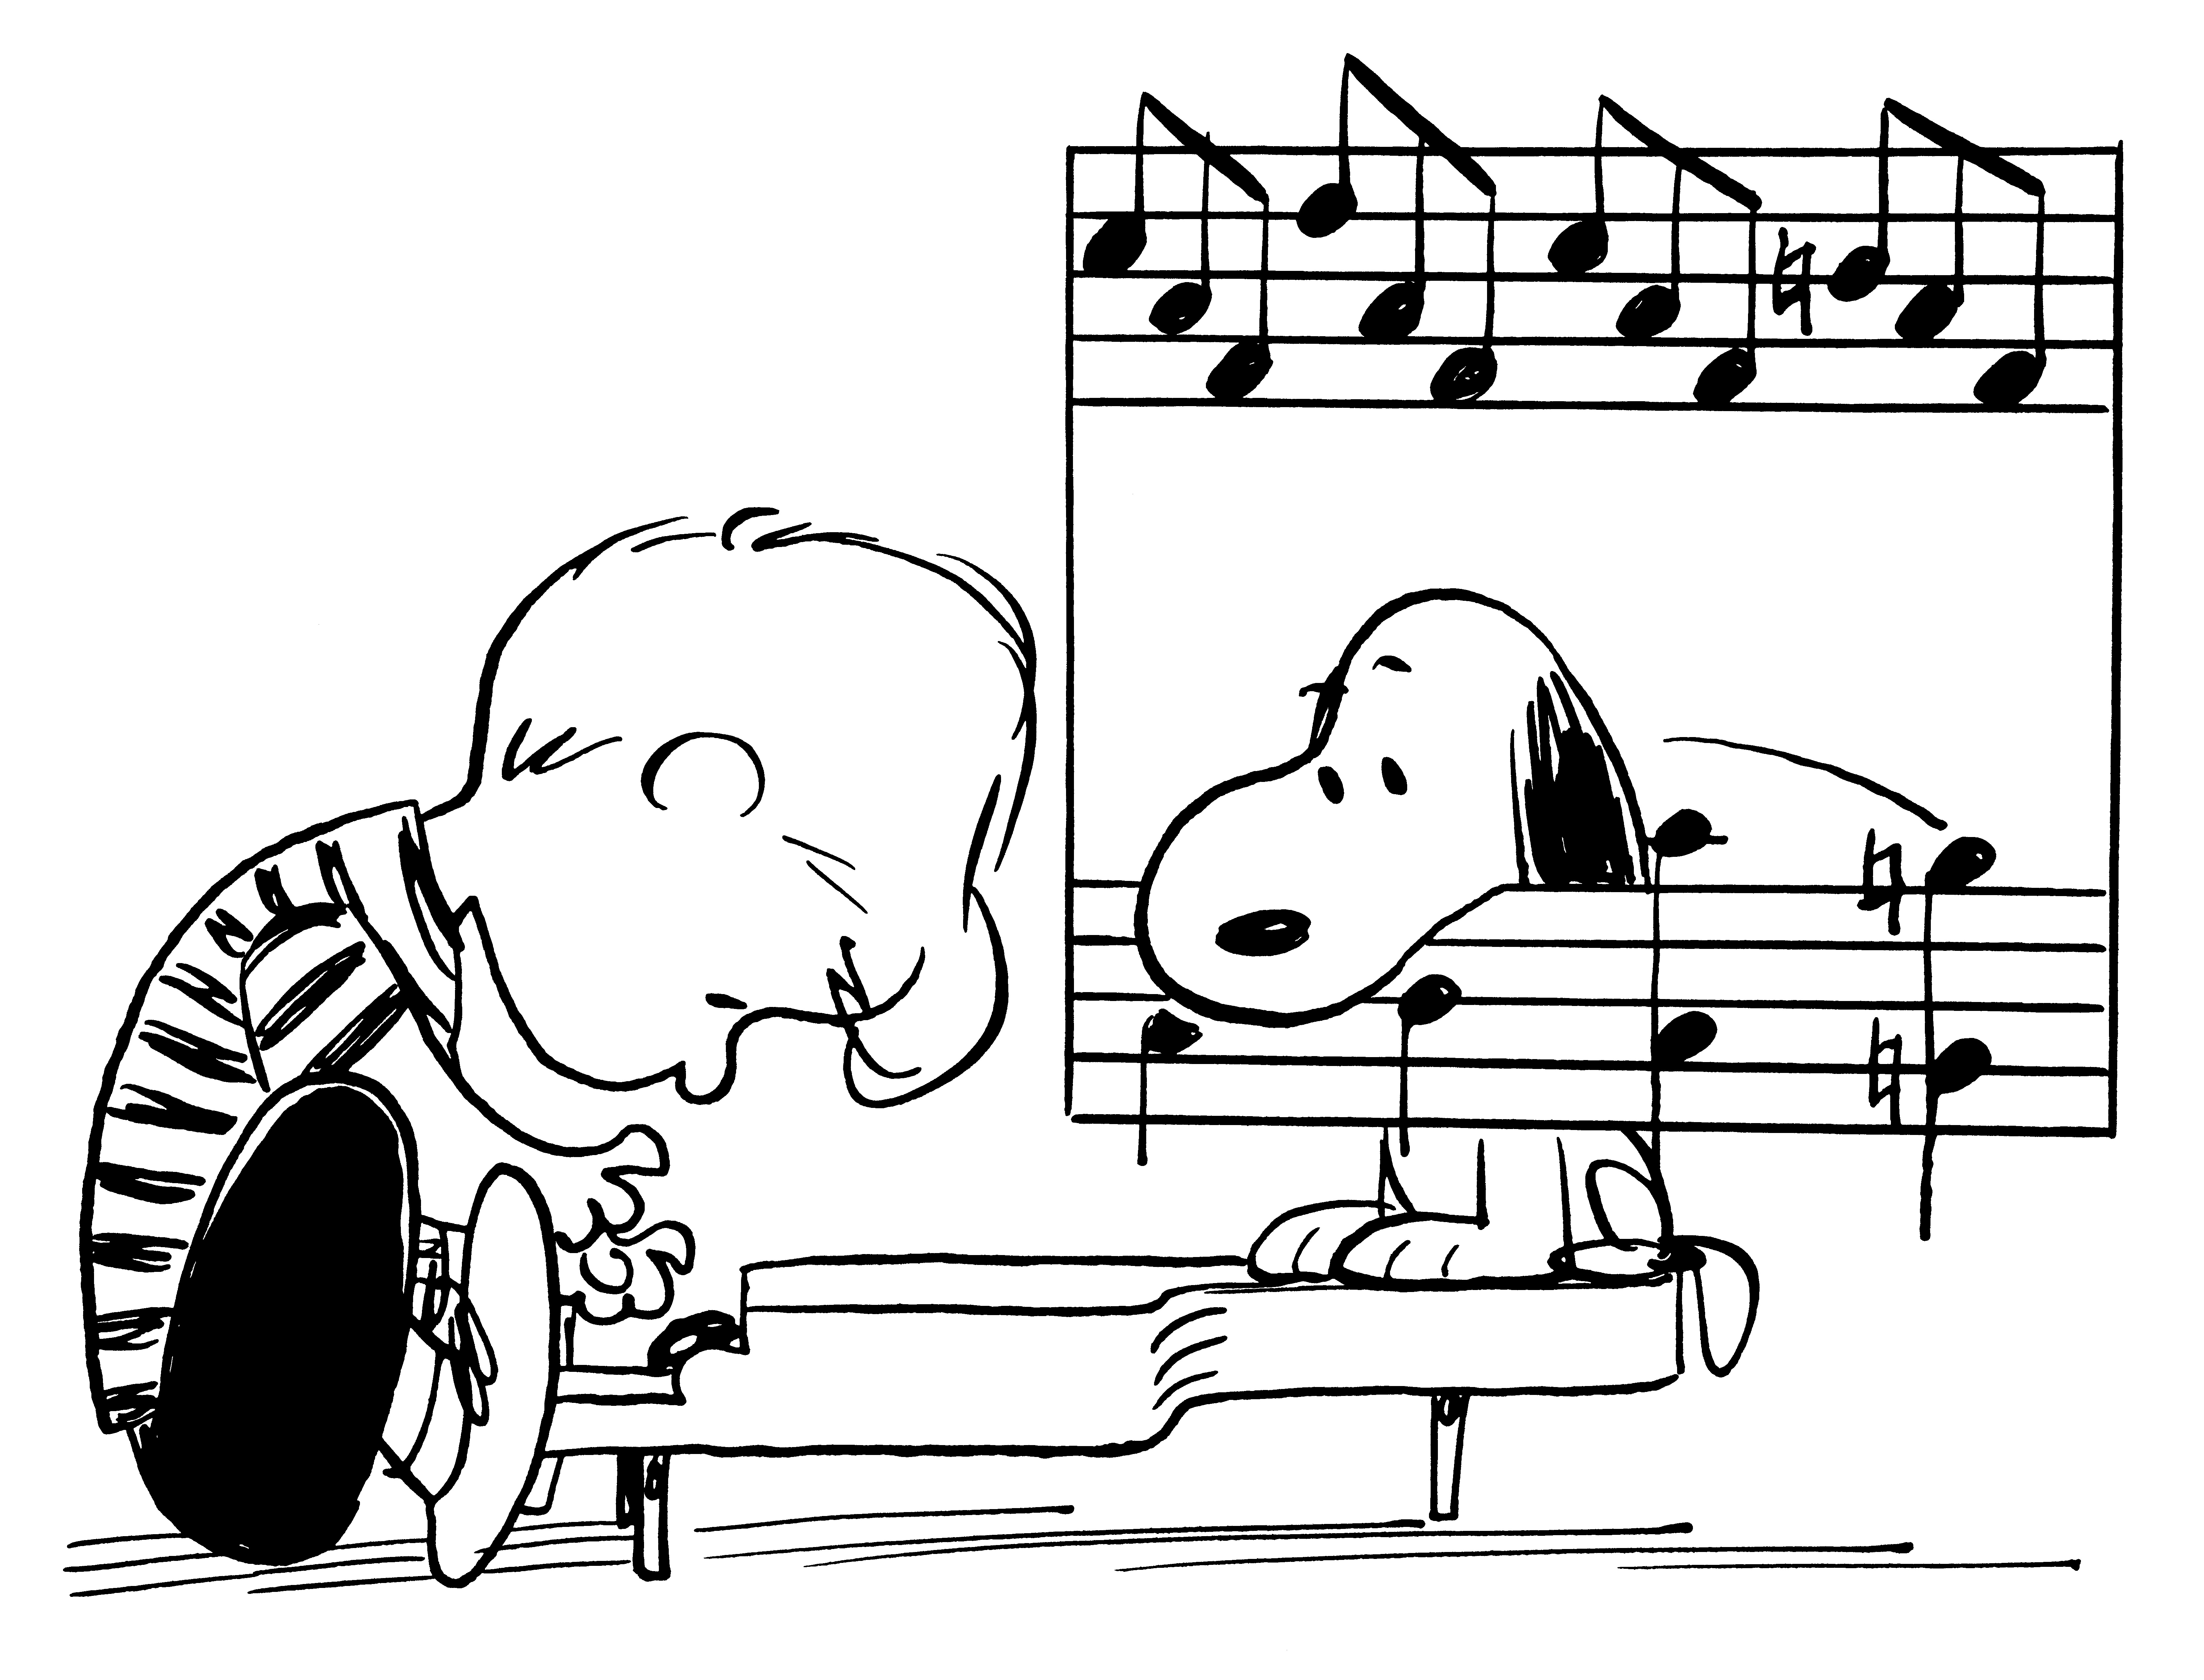 12 themes that make peanuts timeless threadless blog schroeder began playing beethoven on his piano even before he could talk in the comic strip he is the symbol of the artist striving for perfection biocorpaavc Images